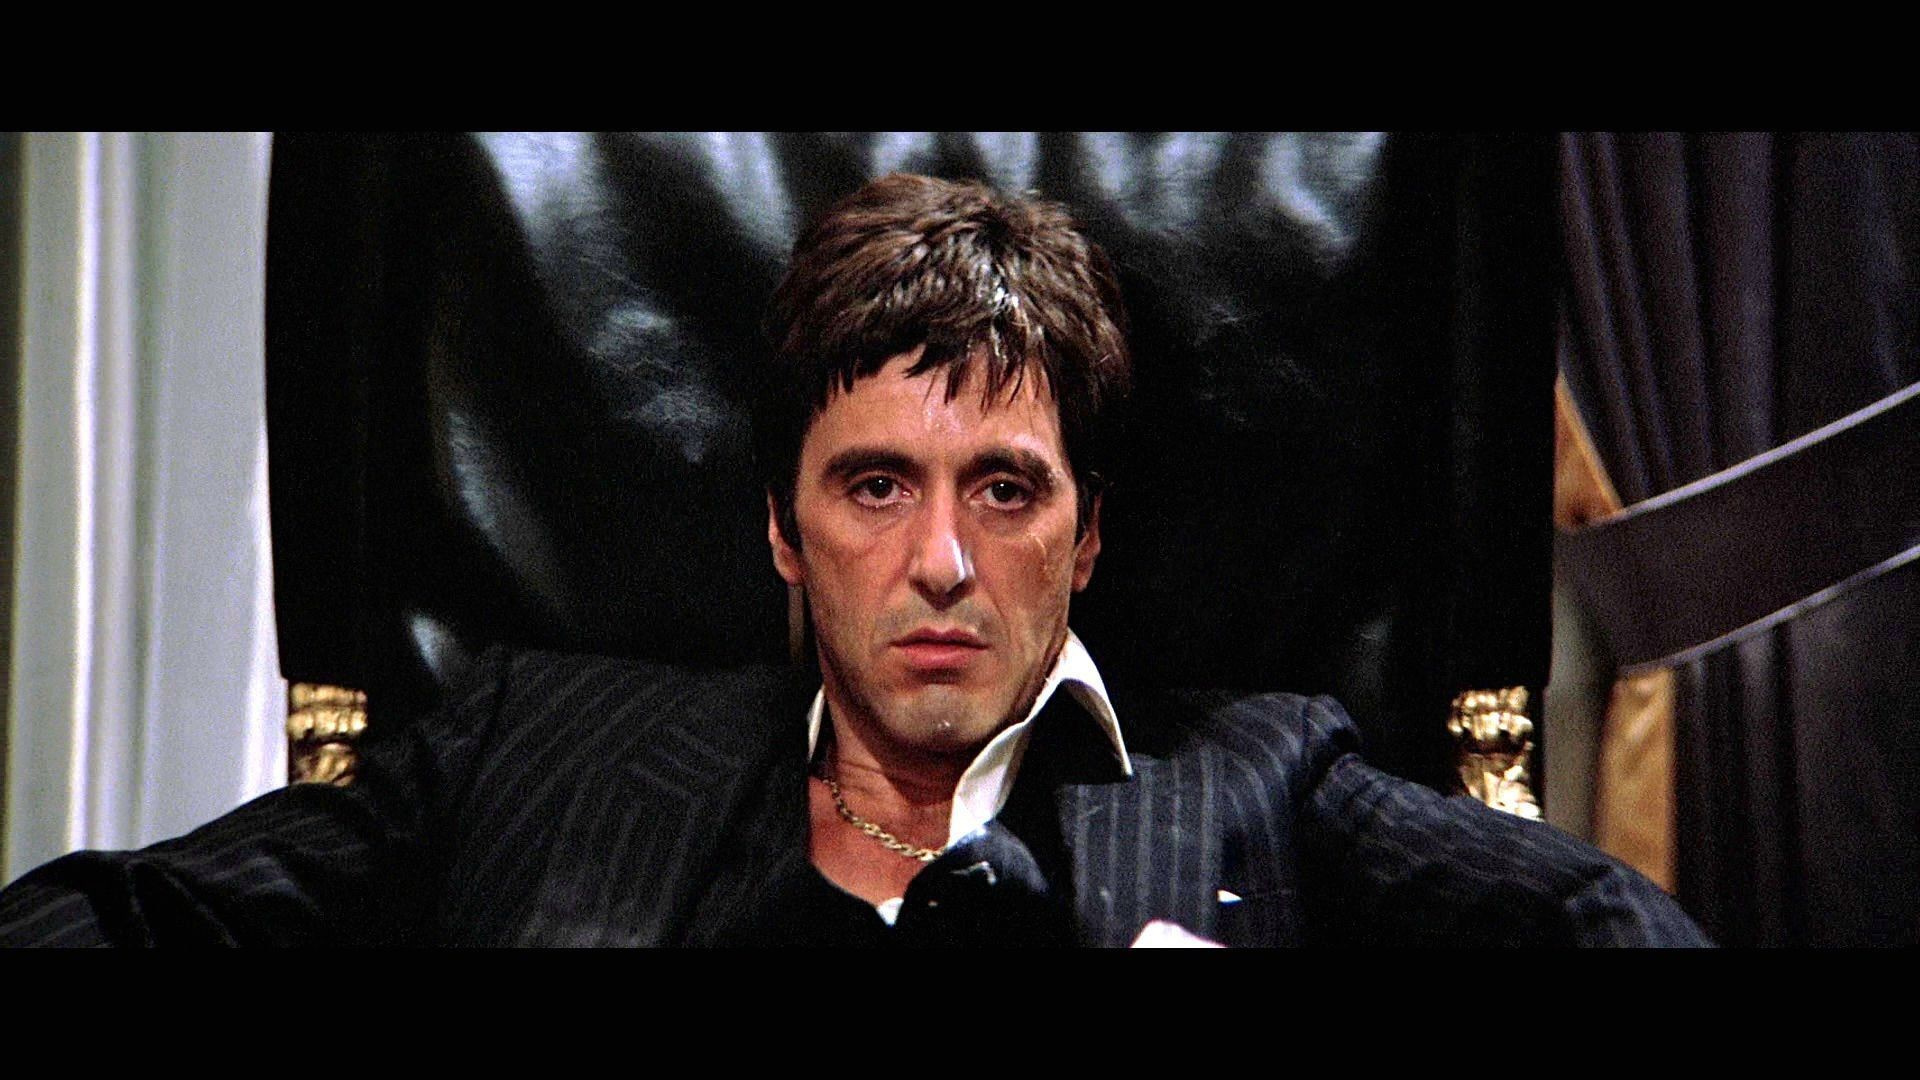 Scarface mural wallpaper wallpapertag - Scarface background ...